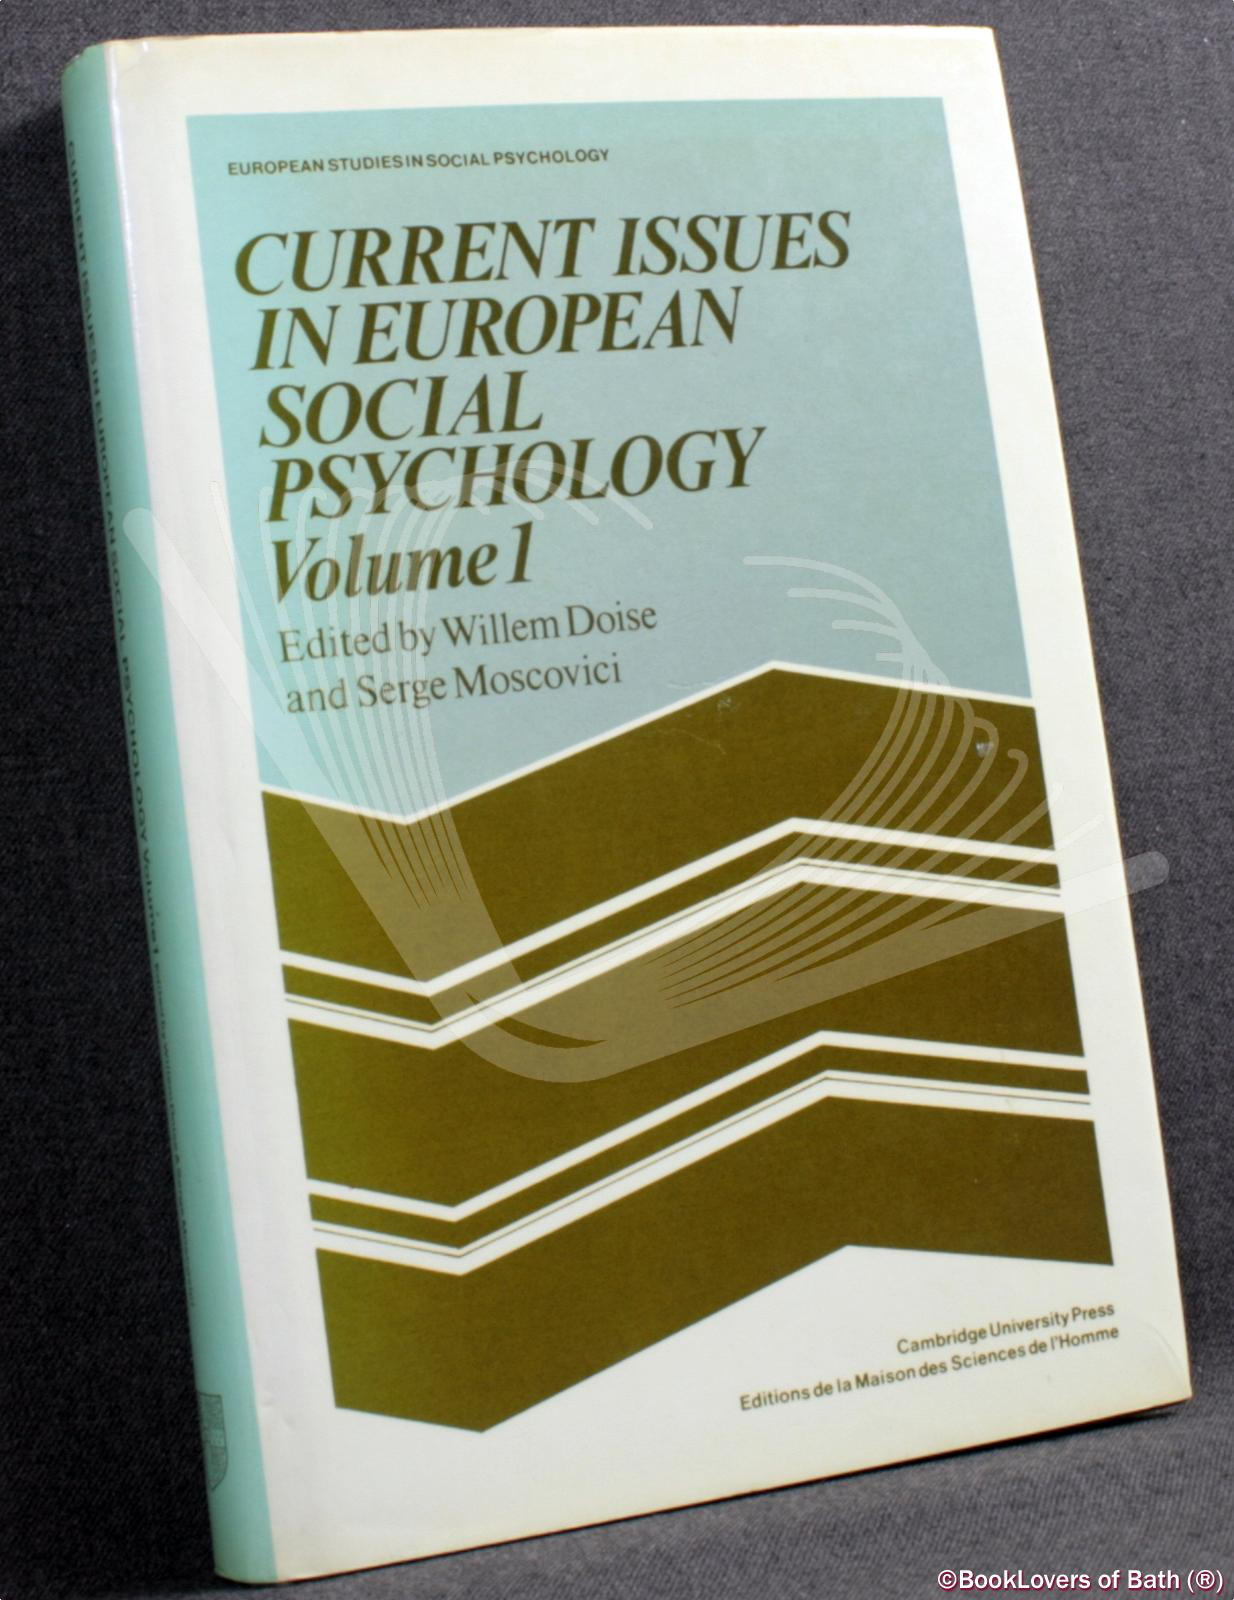 Current Issues in European Social Psychology Volume 1 - Edited by Willem Doise & Serge Moscovici